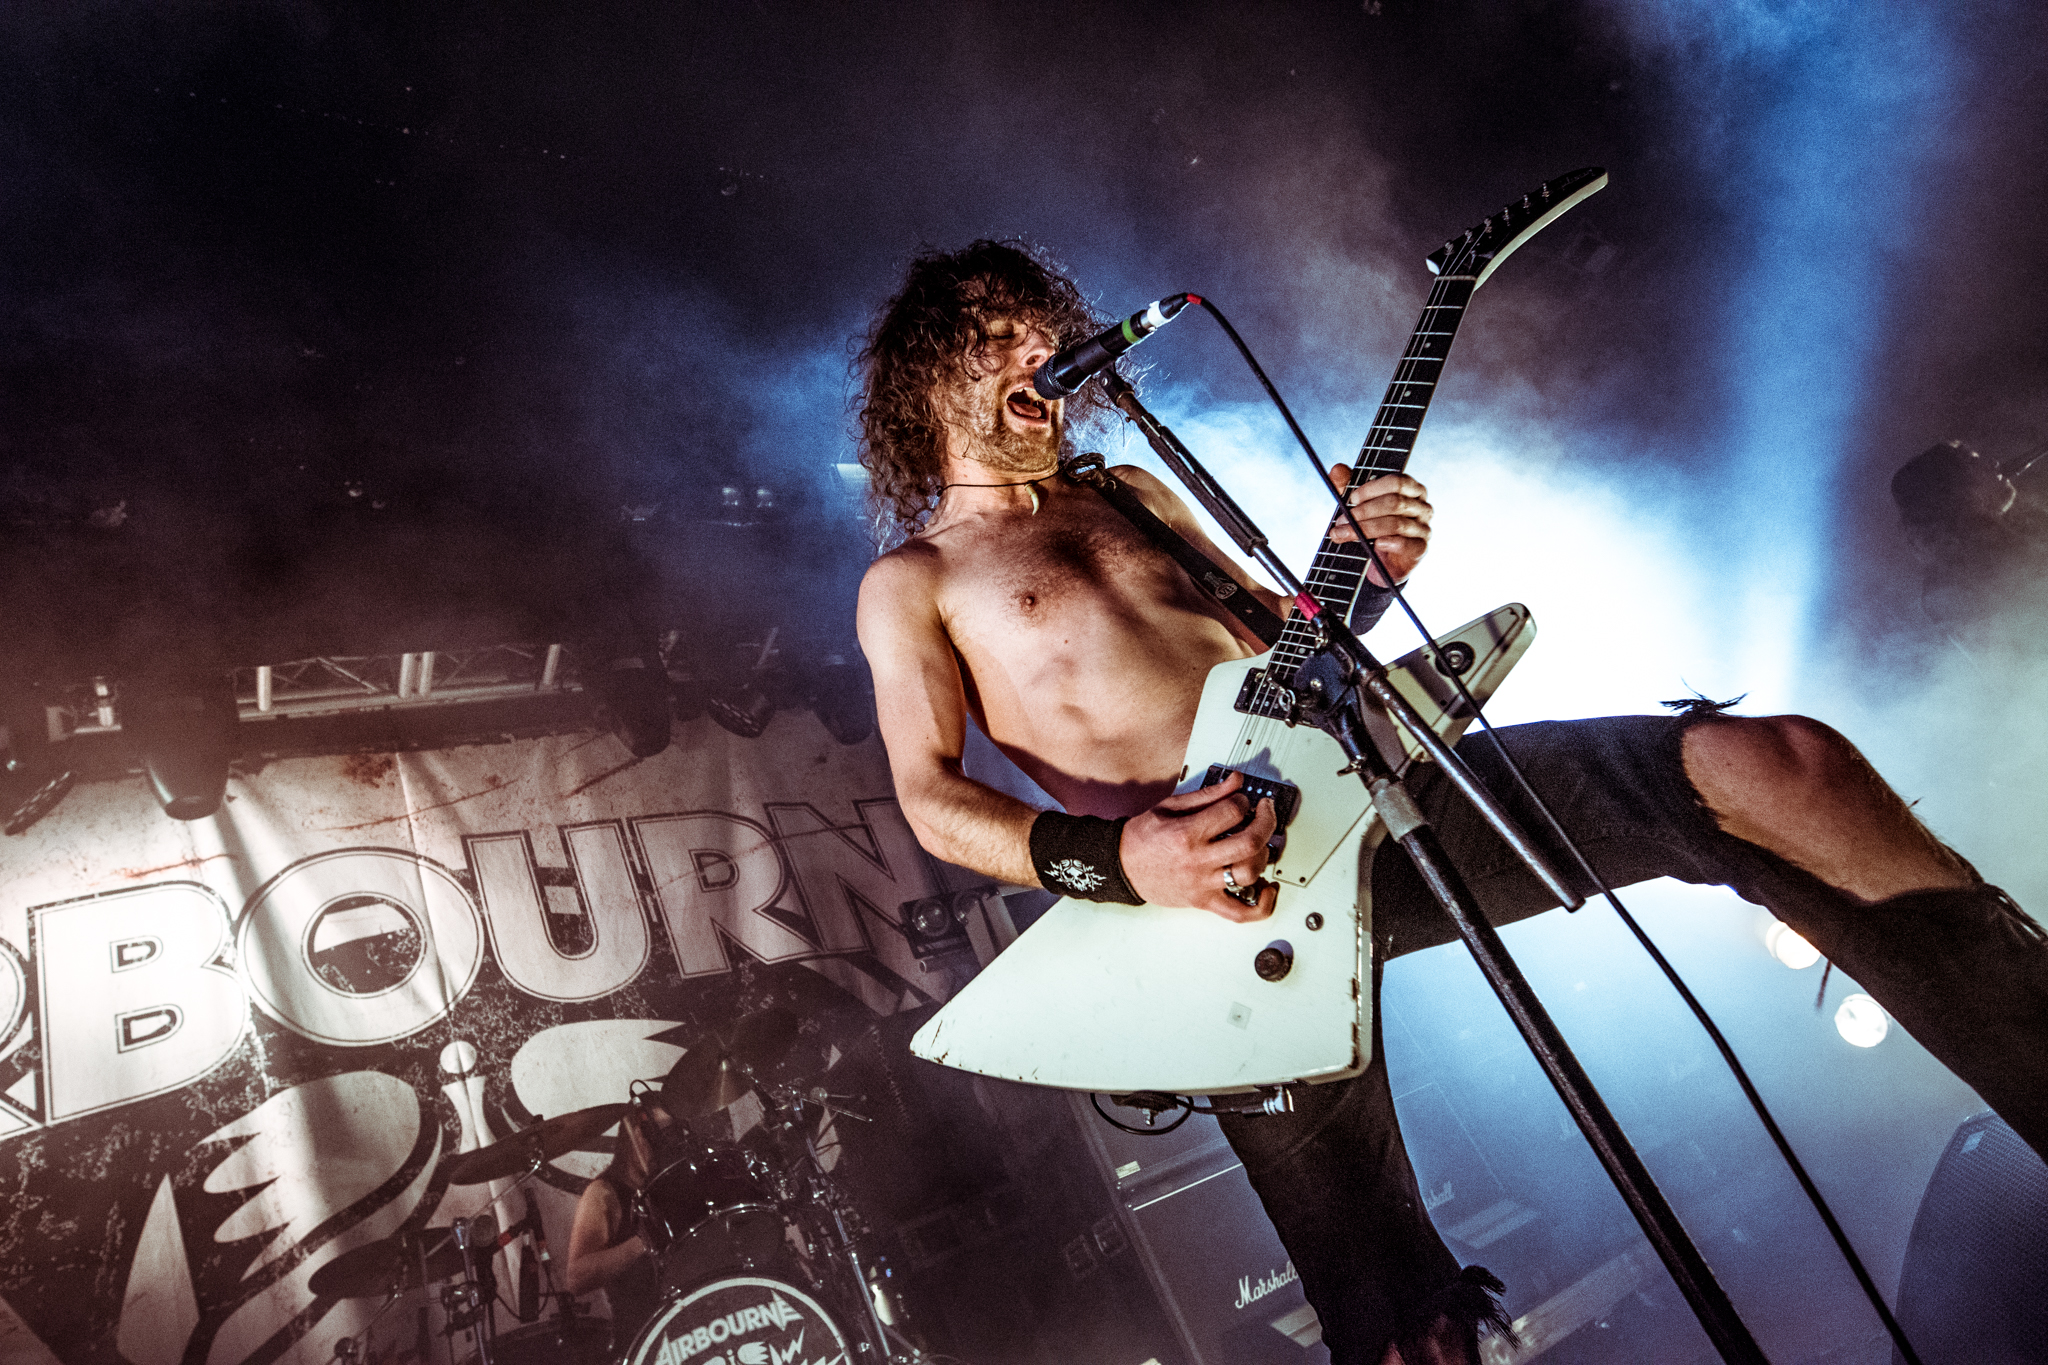 Gallery: Airbourne at O2 Academy Bristol